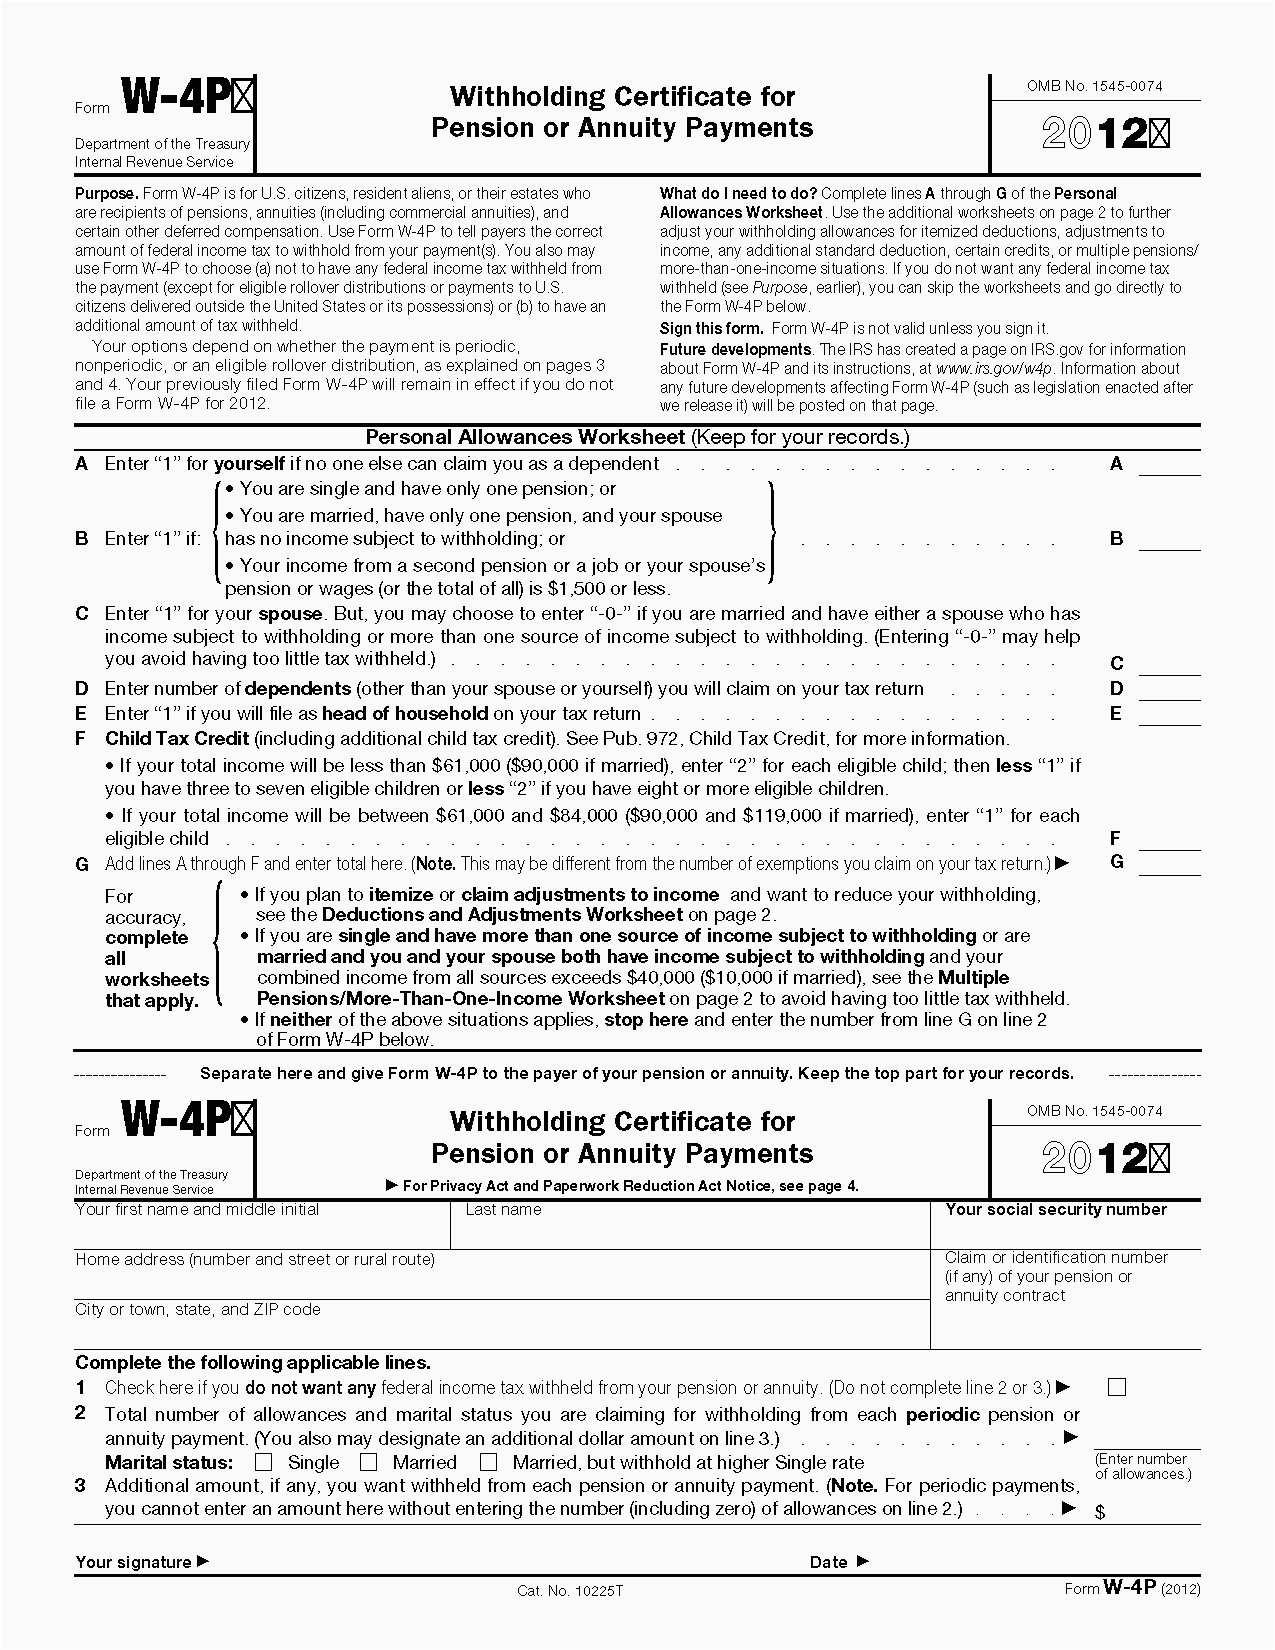 W2 Tax Forms 2018 | Universal Network